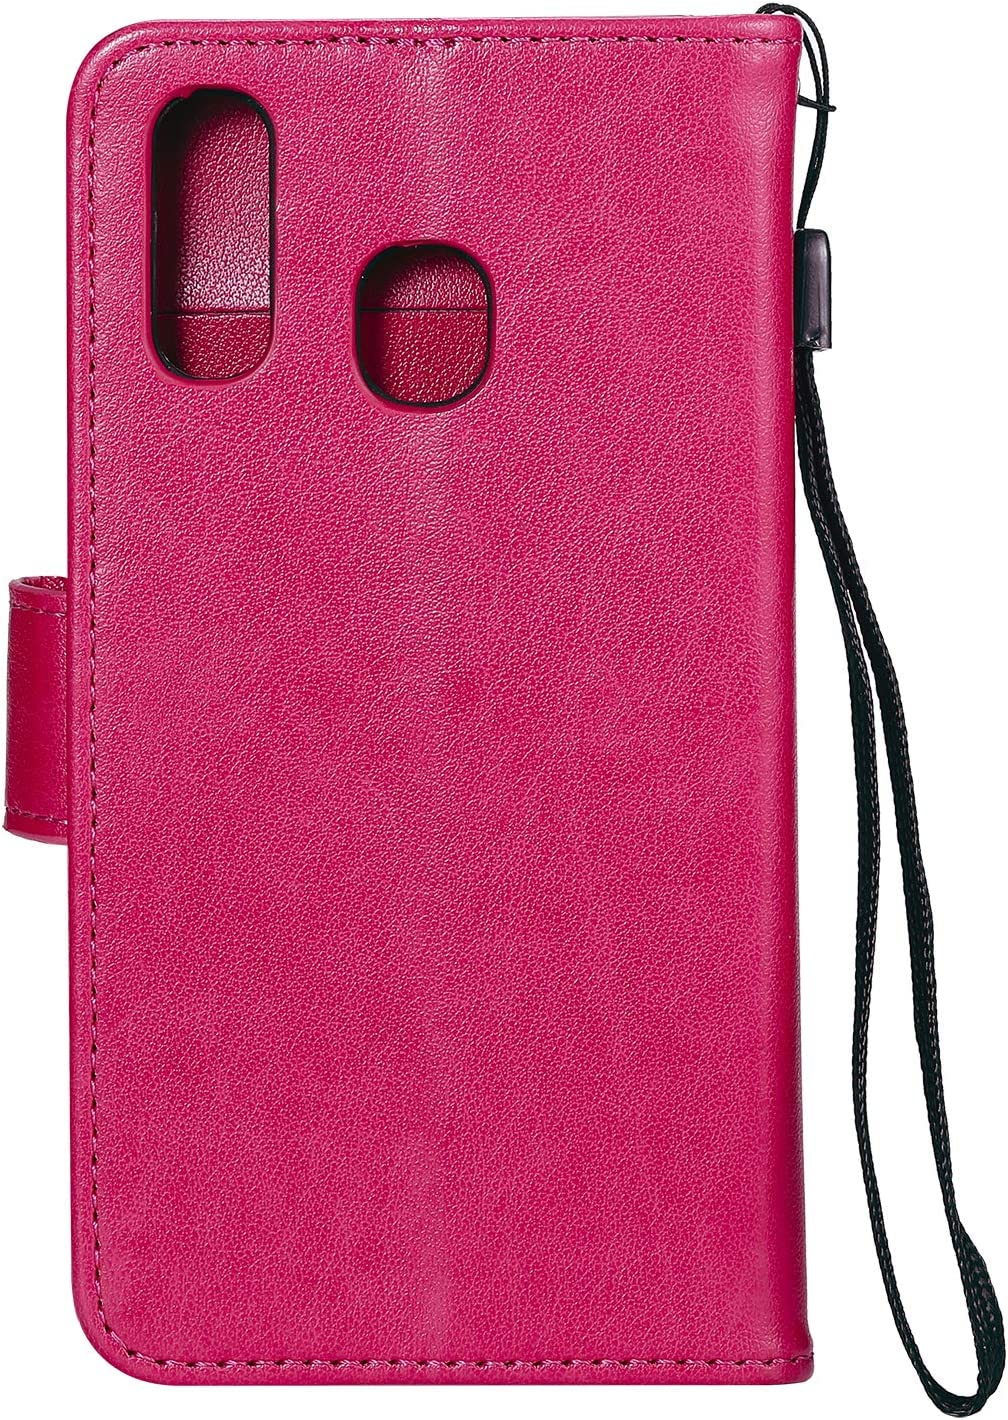 Shockproof Flip Case Cover for Samsung Galaxy A20e LOHHA130151 Red Lomogo Leather Wallet Case for Galaxy A20e A10e with Stand Feature Card Holder Magnetic Closure A10e